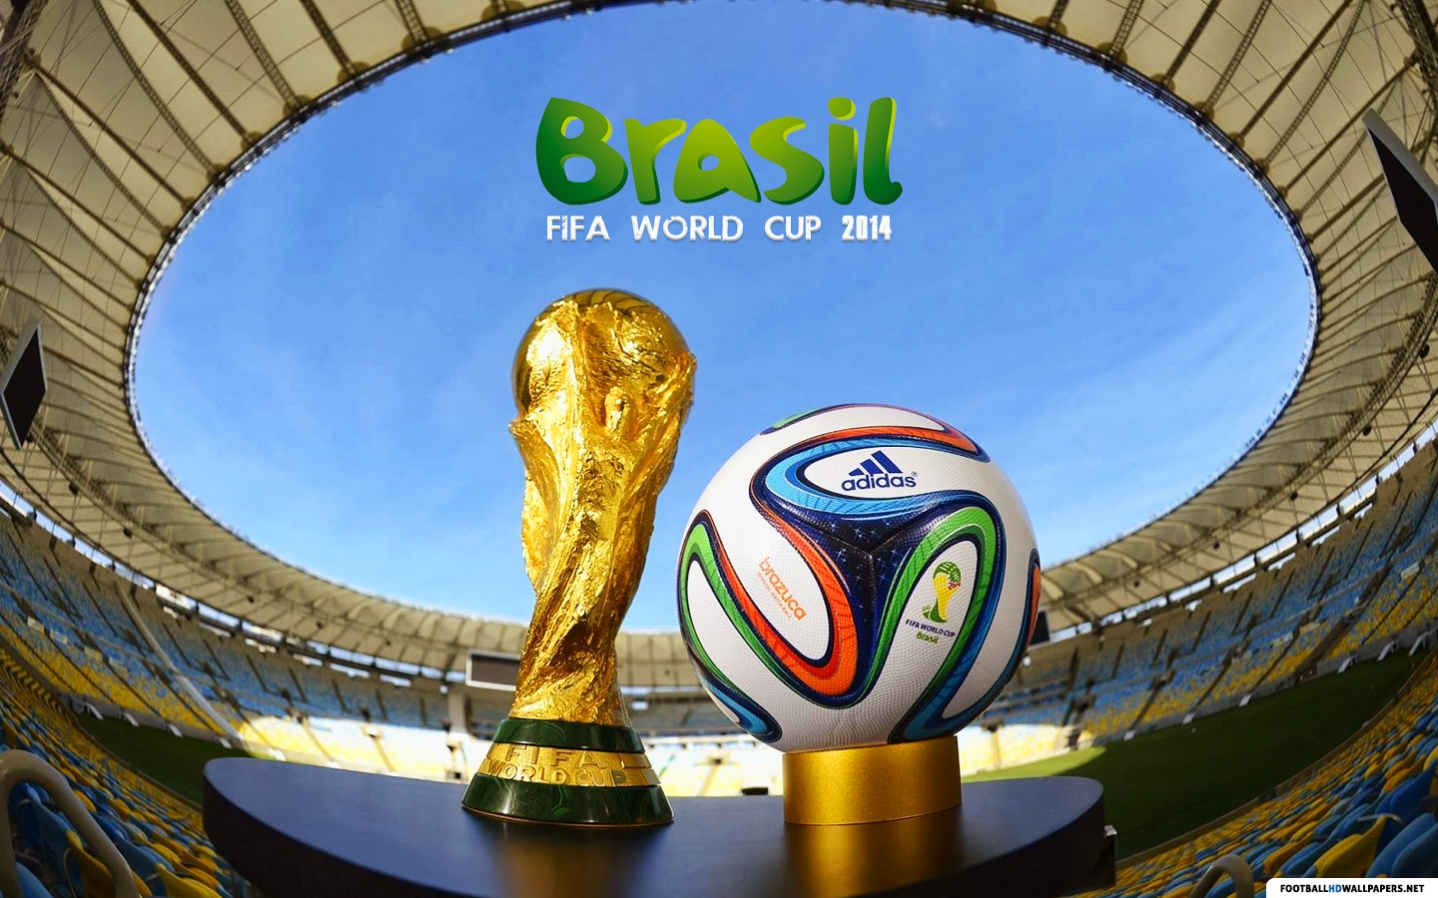 fifa-world-cup-2014-brazil-trophy-and-official-football-hd-wallpapers